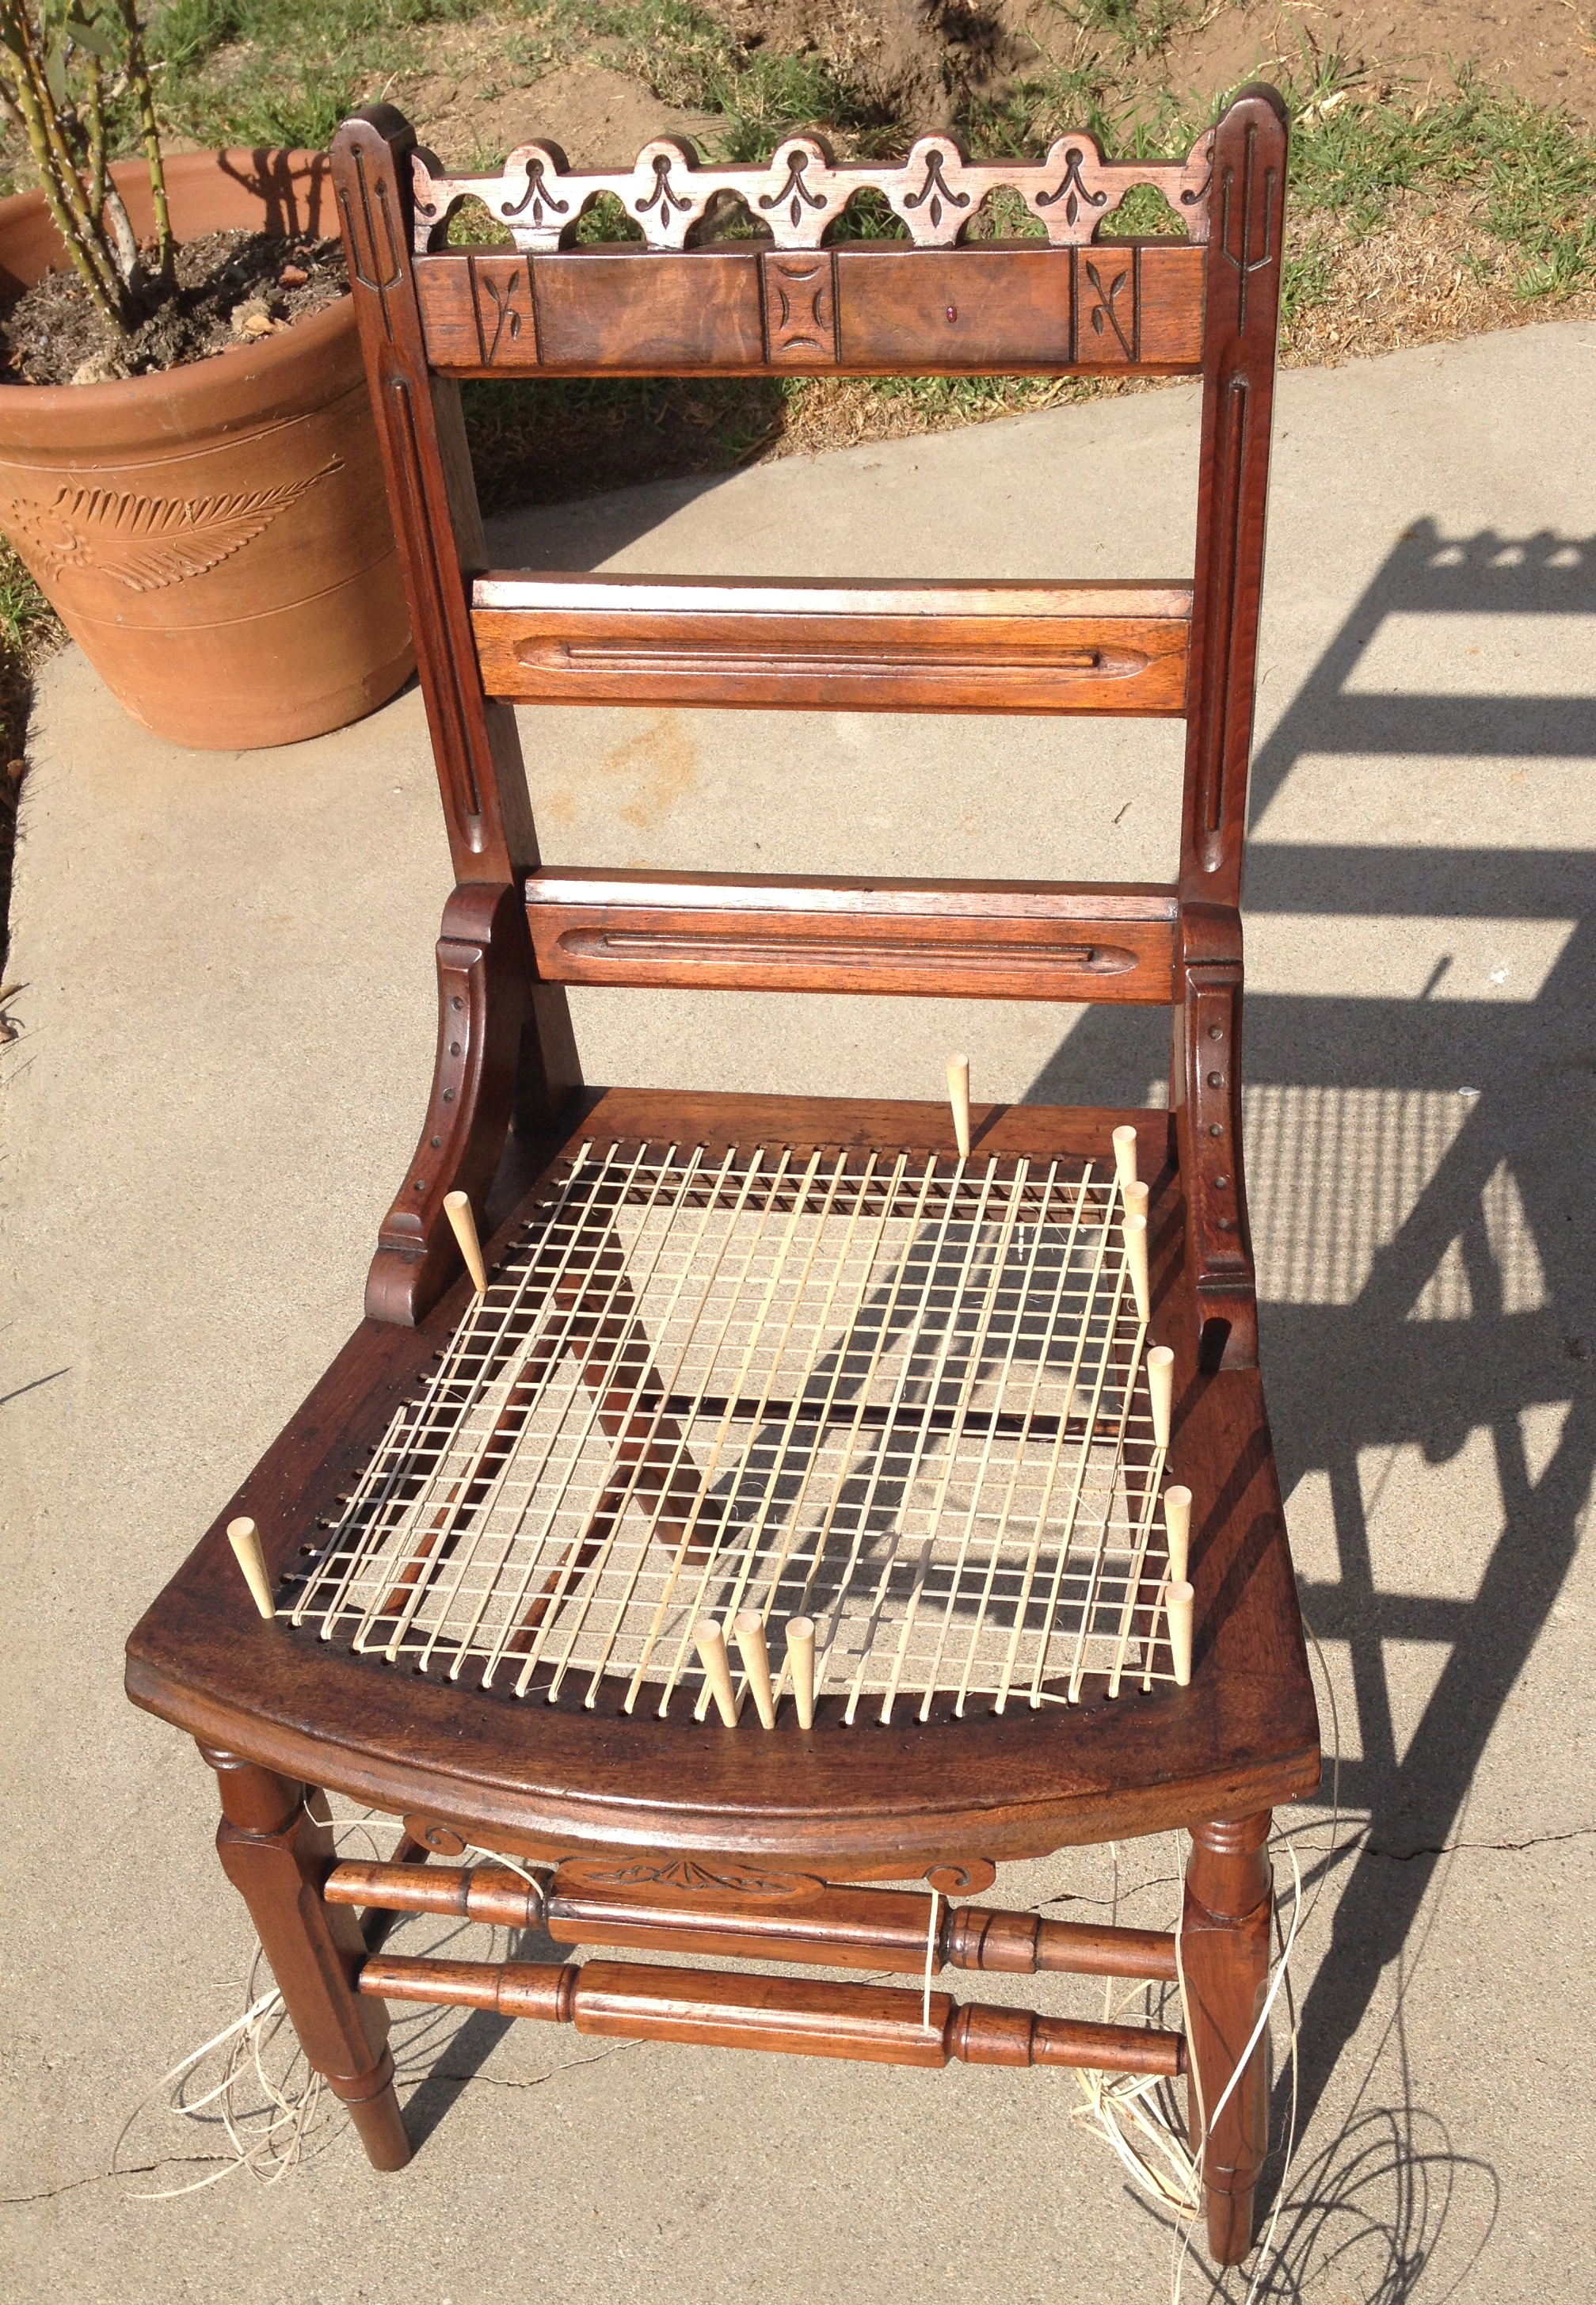 how to cane a chair bar slipcovers seat weaving  hand caning an 1880s cottage